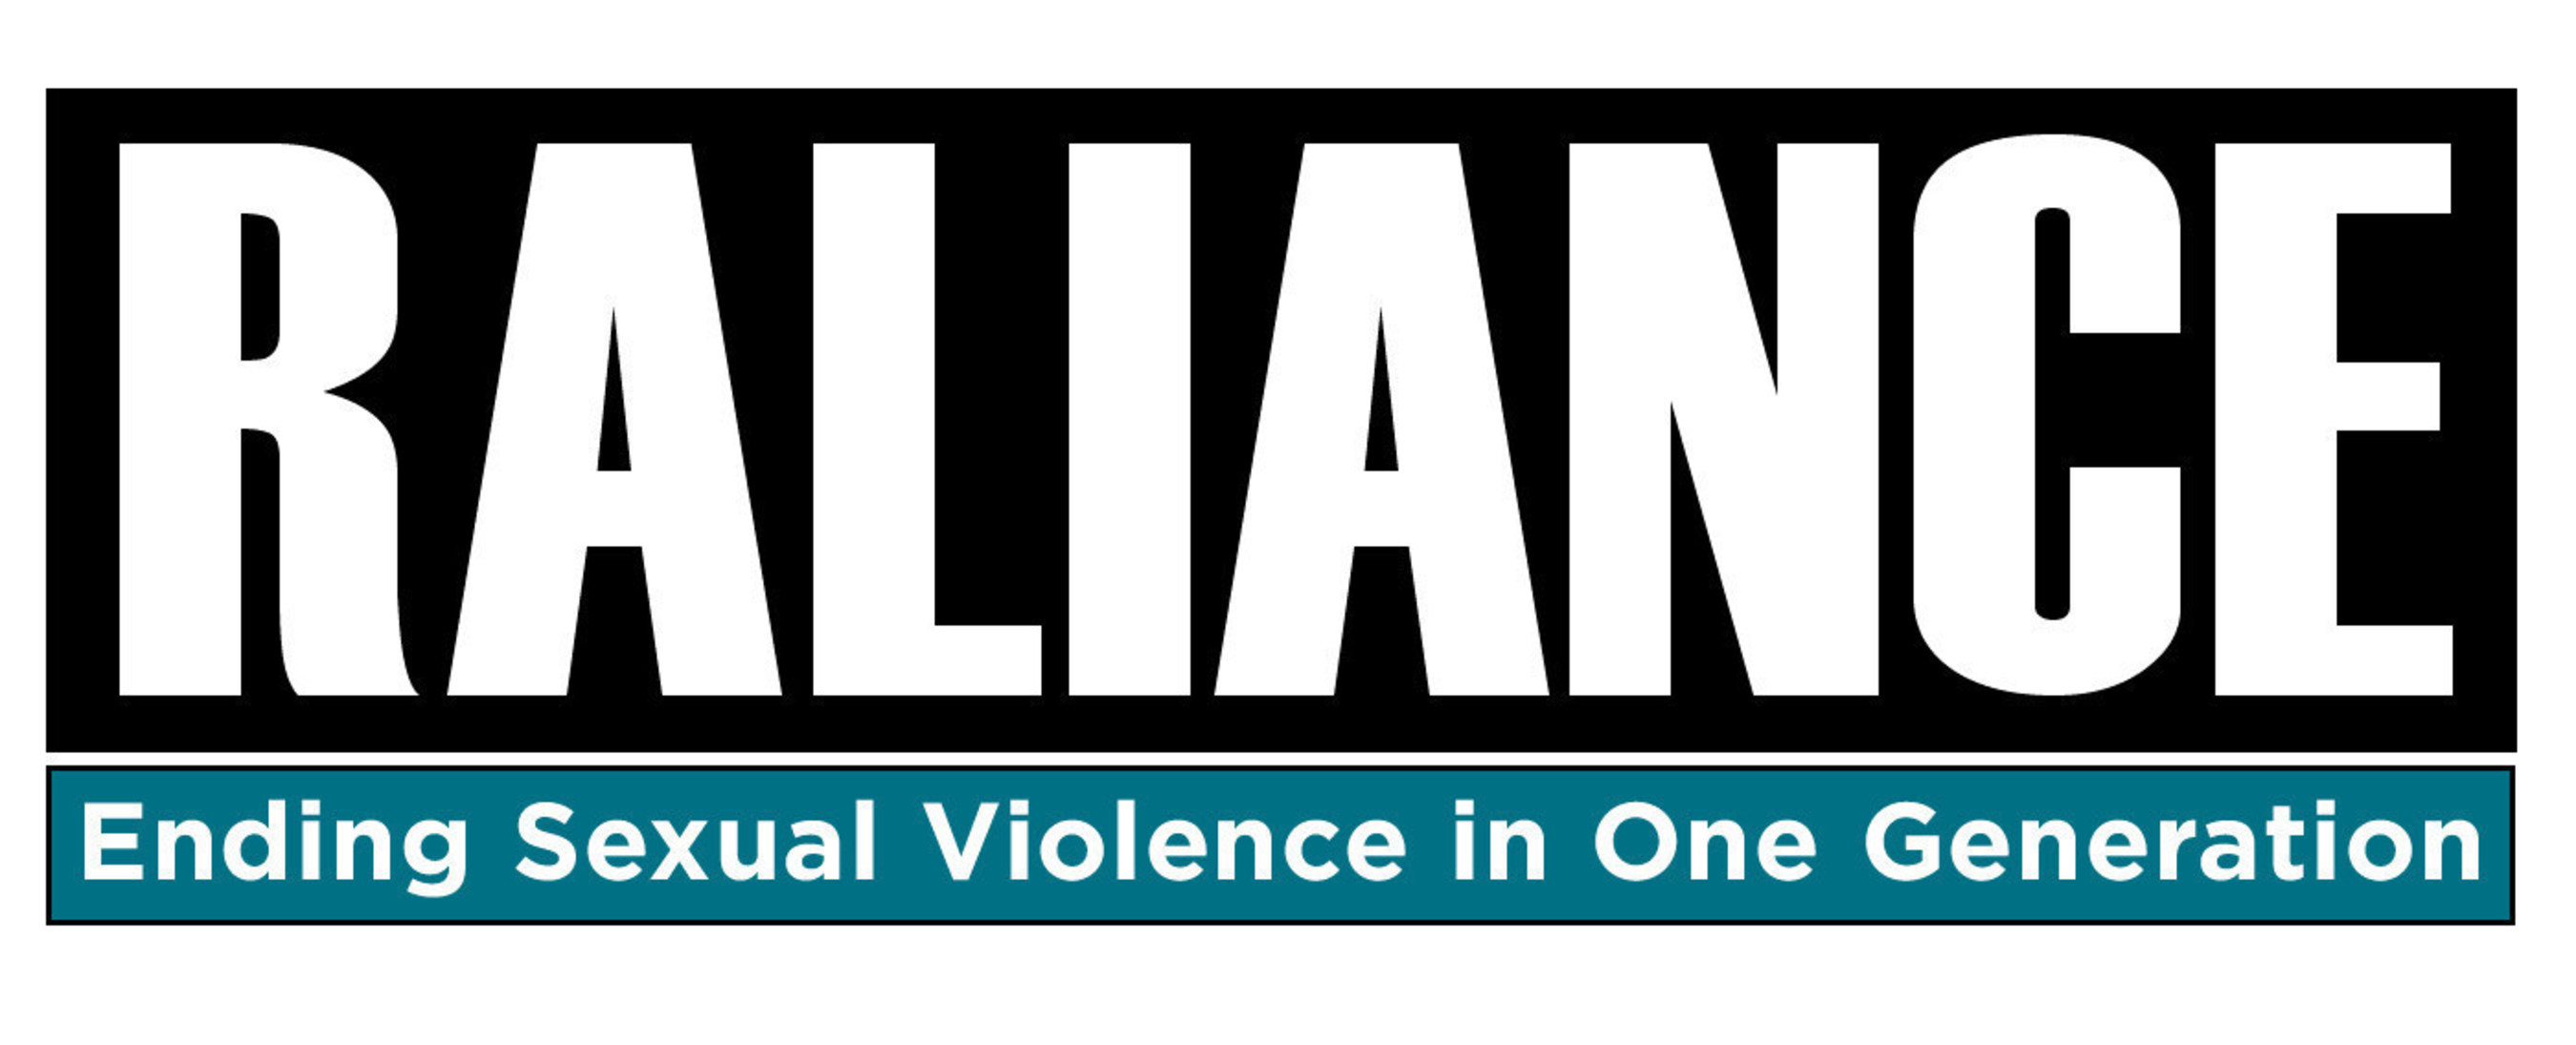 RALIANCE's mission is to end sexual harassment in one generation, and their 2021 grant totaling $150K will help achieve that goal. (Image credit: RALIANCE)